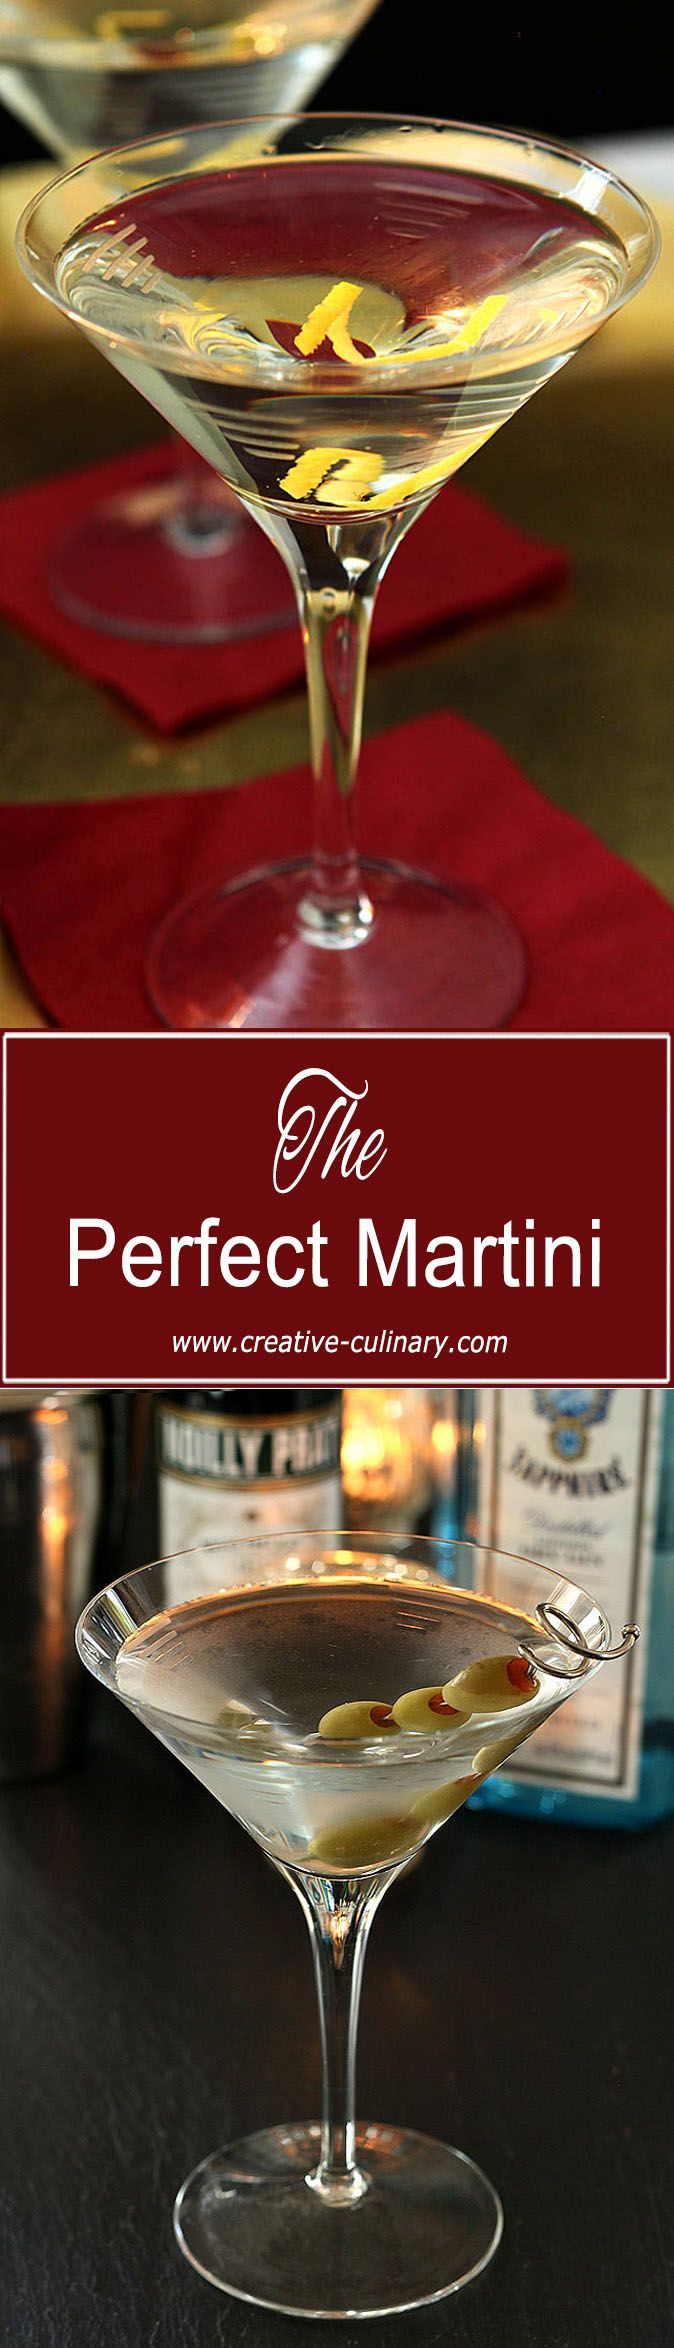 The Perfect Martini is simply one that is perfect for you; starting with good gin and vermouth can make all the difference! via @creativculinary